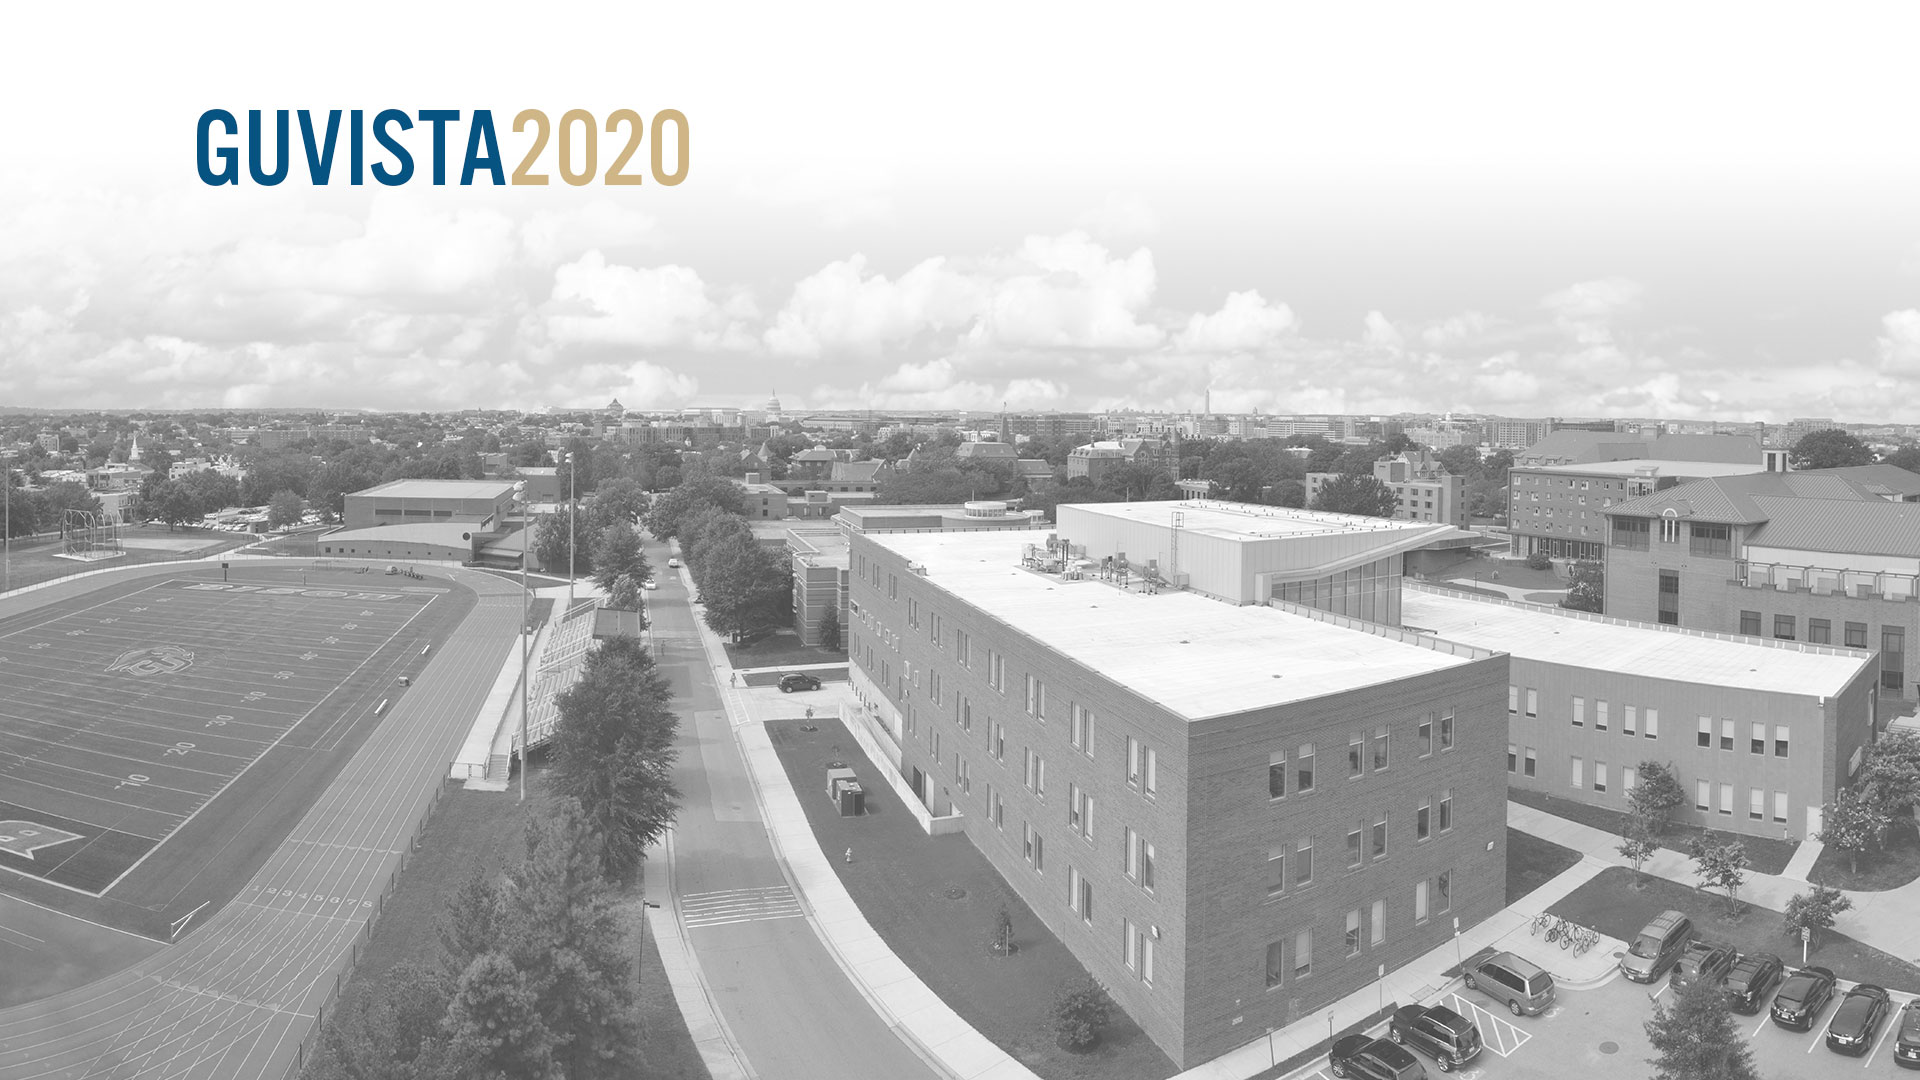 GUVista2020, black and white image of an aerial view of the campus. Football field ot the left and to the right, the Sorenson building.